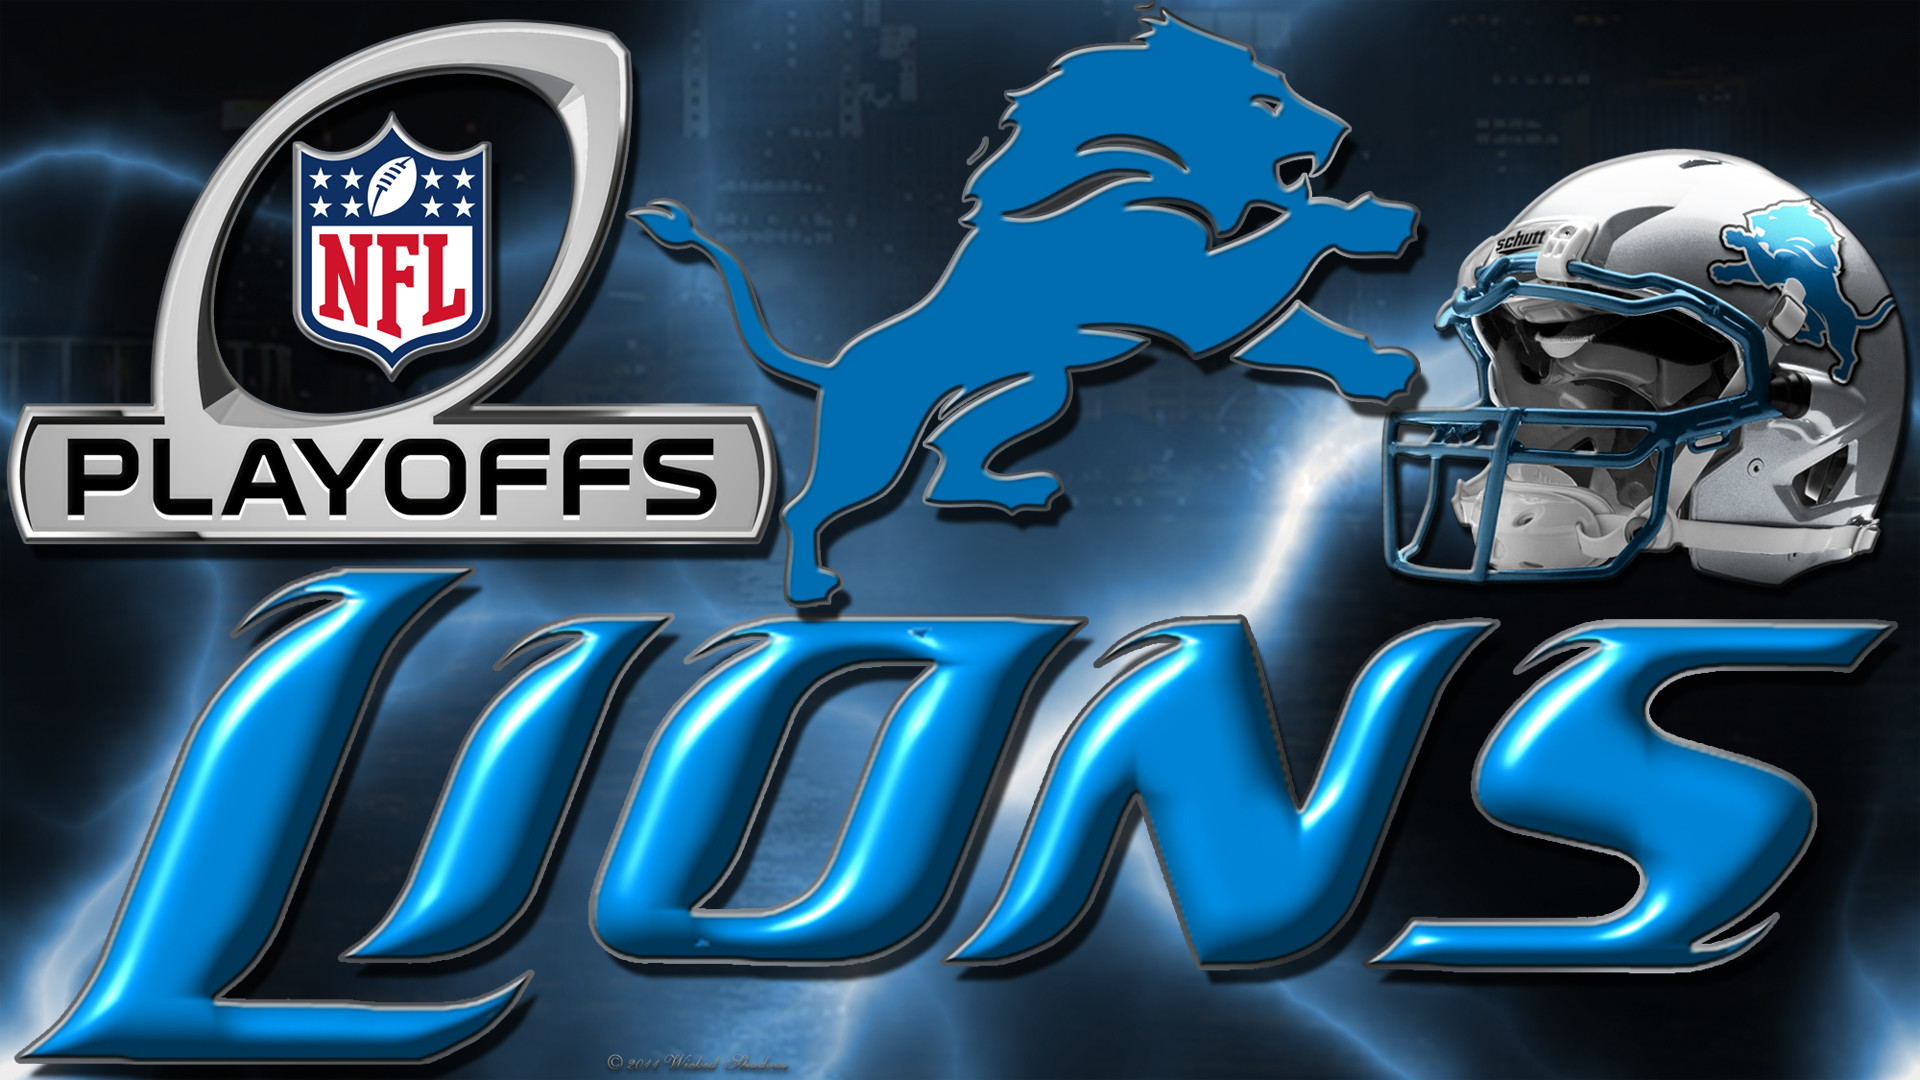 Wallpapers By Wicked Shadows: Detroit Lions 2012 Playoffs Wallpaper